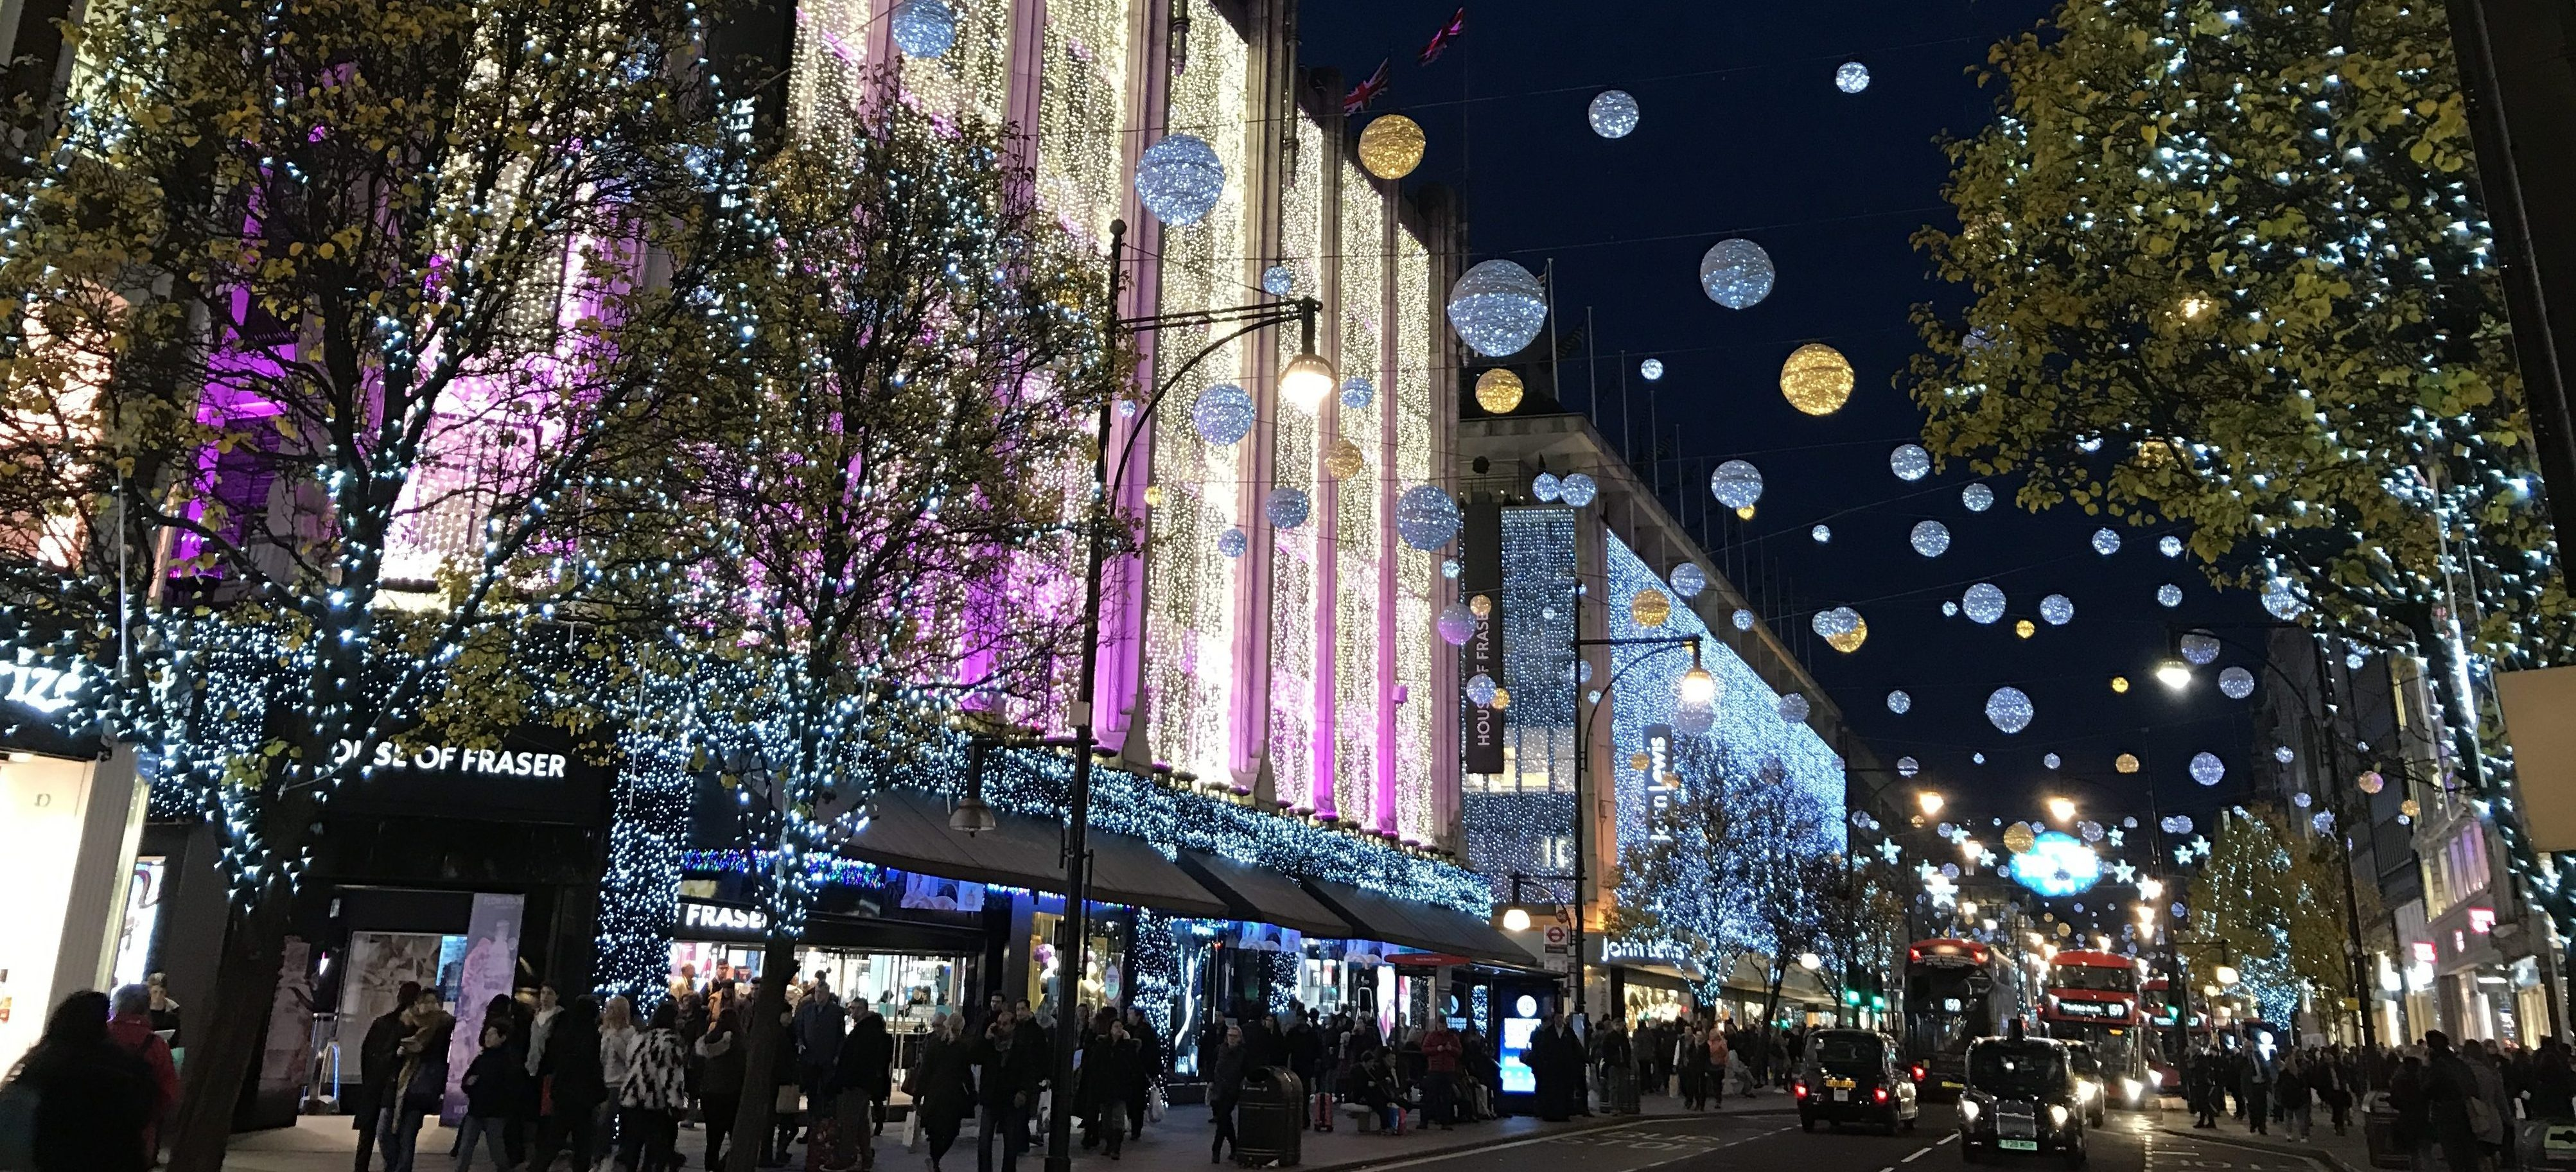 The ultimate guide to Christmas shopping in London